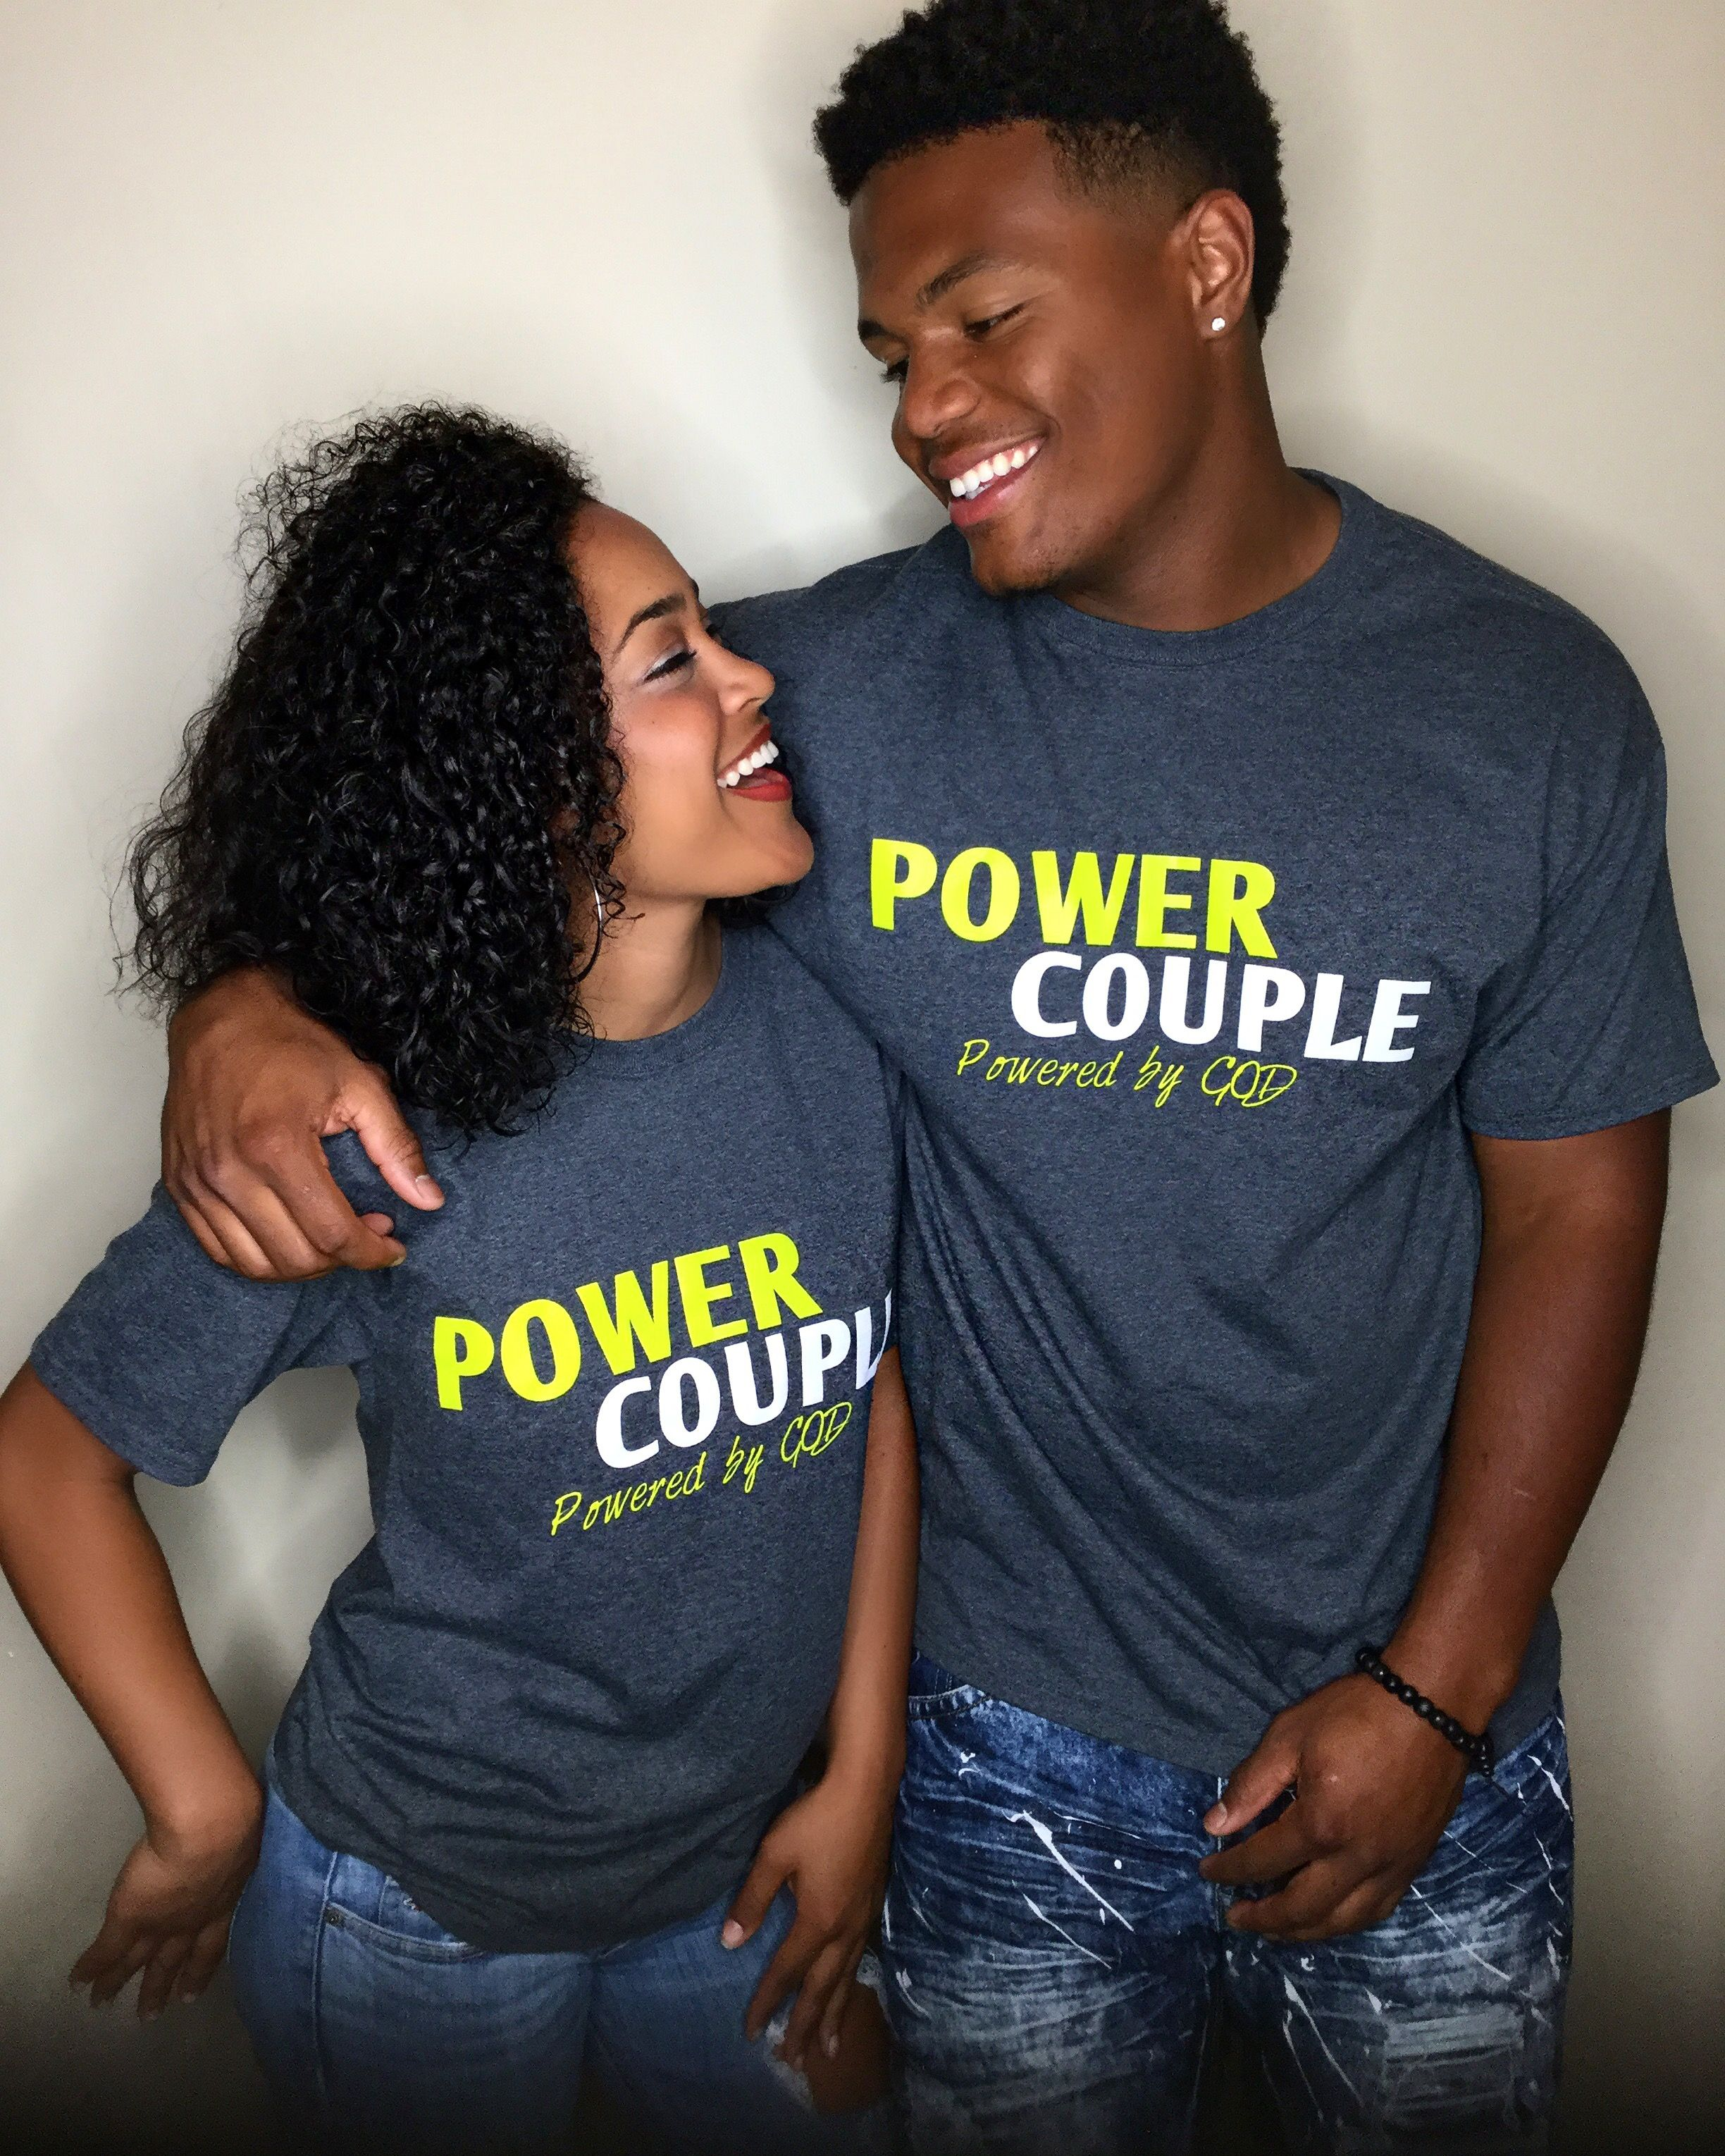 72c2eb6f1e Power Couple t shirts www.PowerCoupleClothing.com | Christian ...